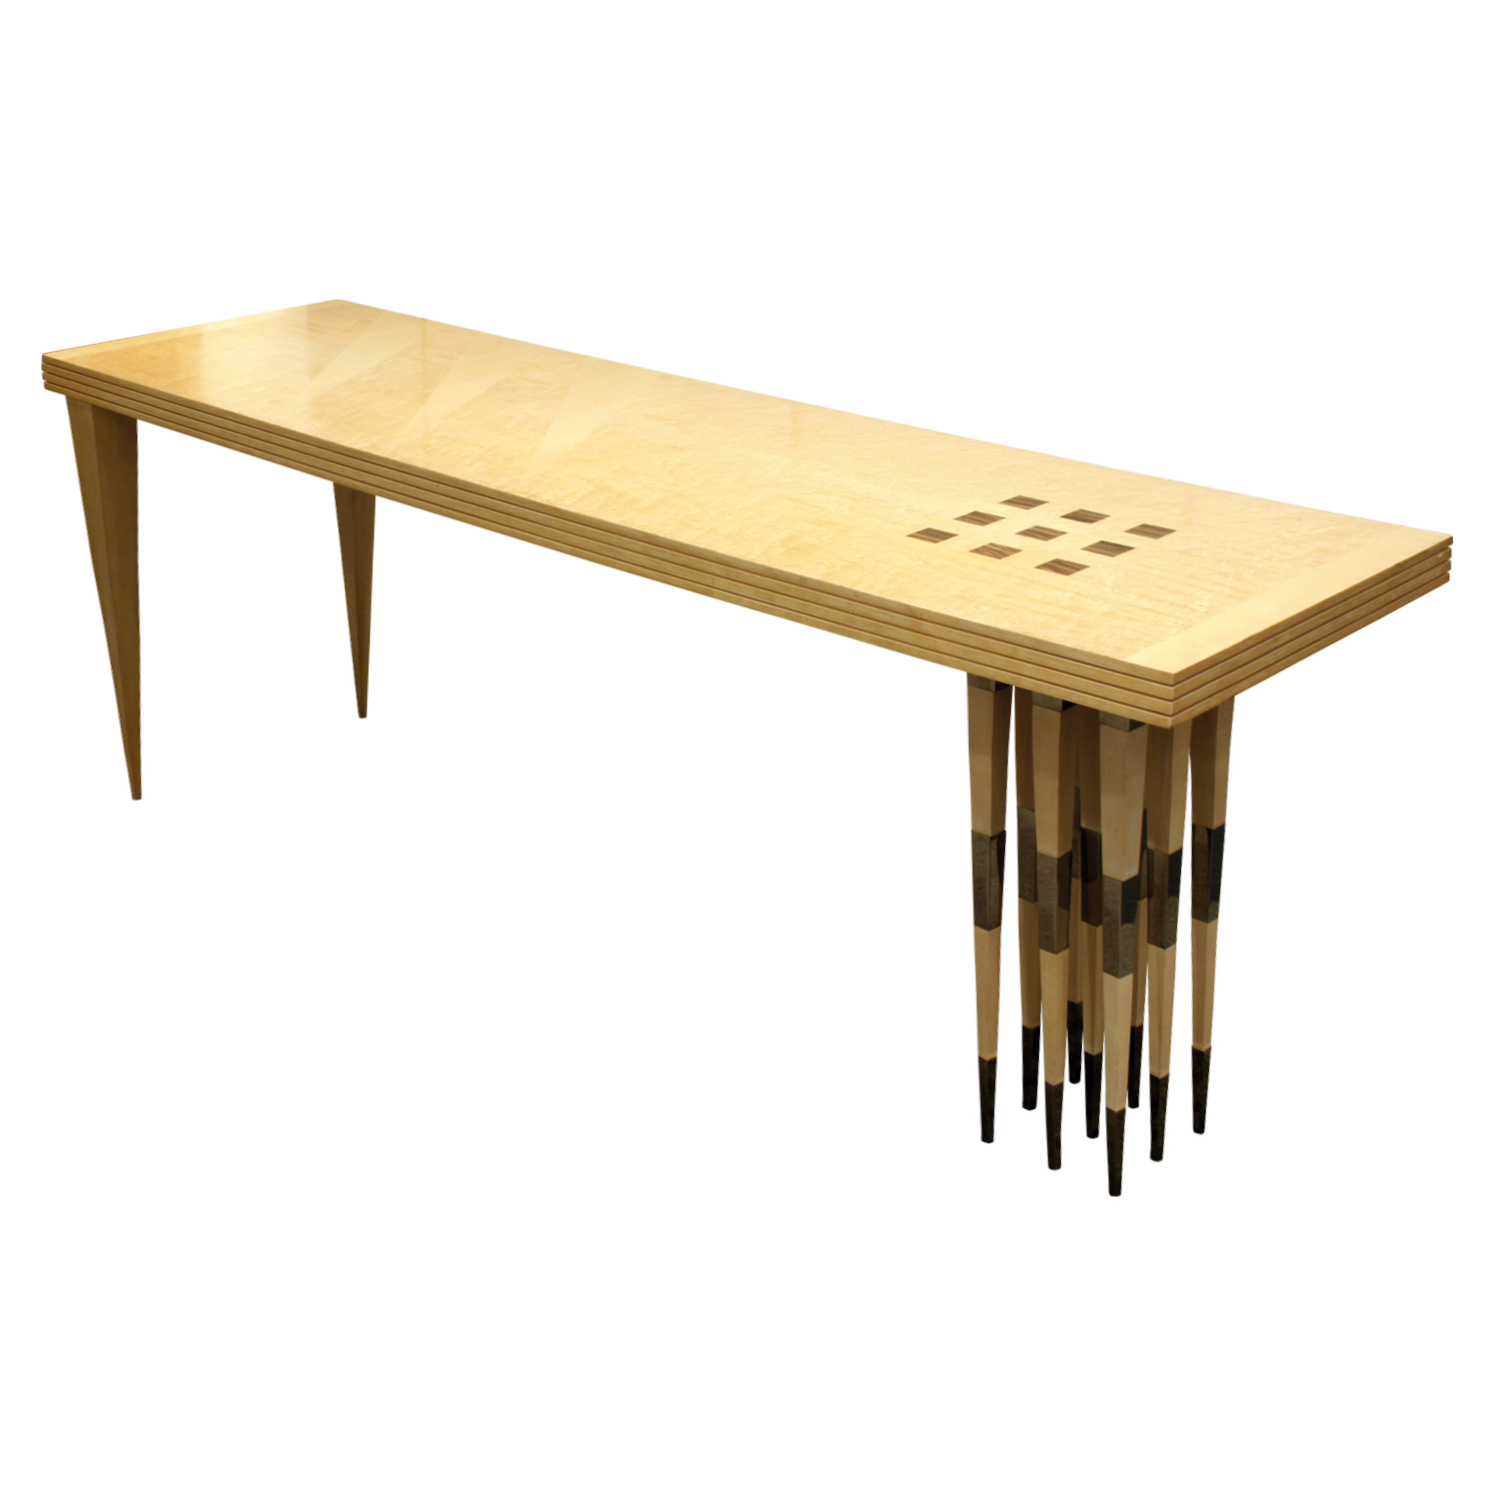 Niedermaier 120 Stiletto Console consoletable111 angl.jpg